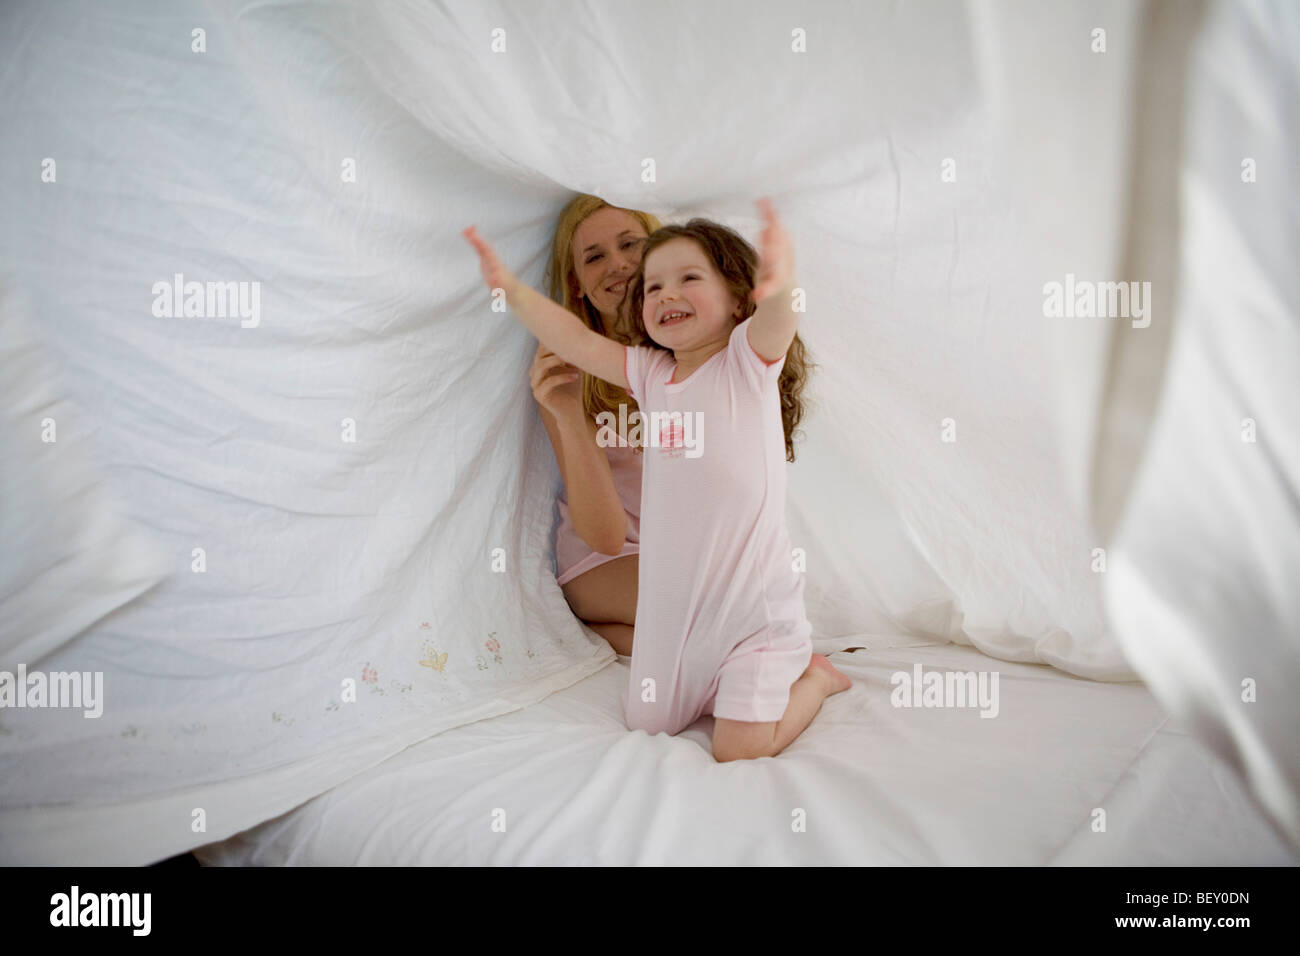 mother and daughter playing with sheet - Stock Image